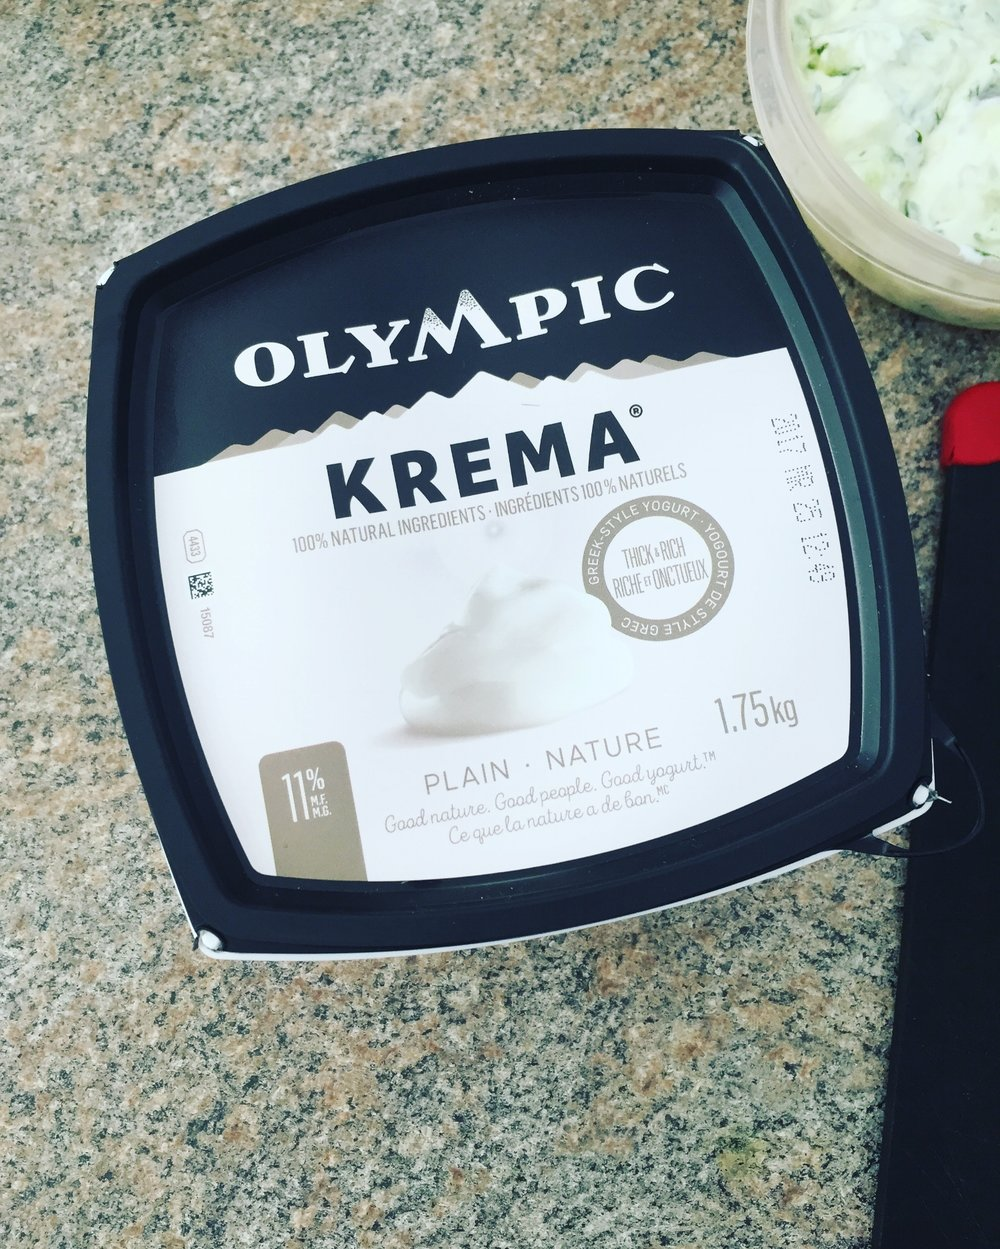 I literally get the giant1.75kg tub of this because I go through greek yogurt quickly, especially when cooking. Its more Smart Cookie too because its approx $10 instead of $6 for something a fraction of this size.